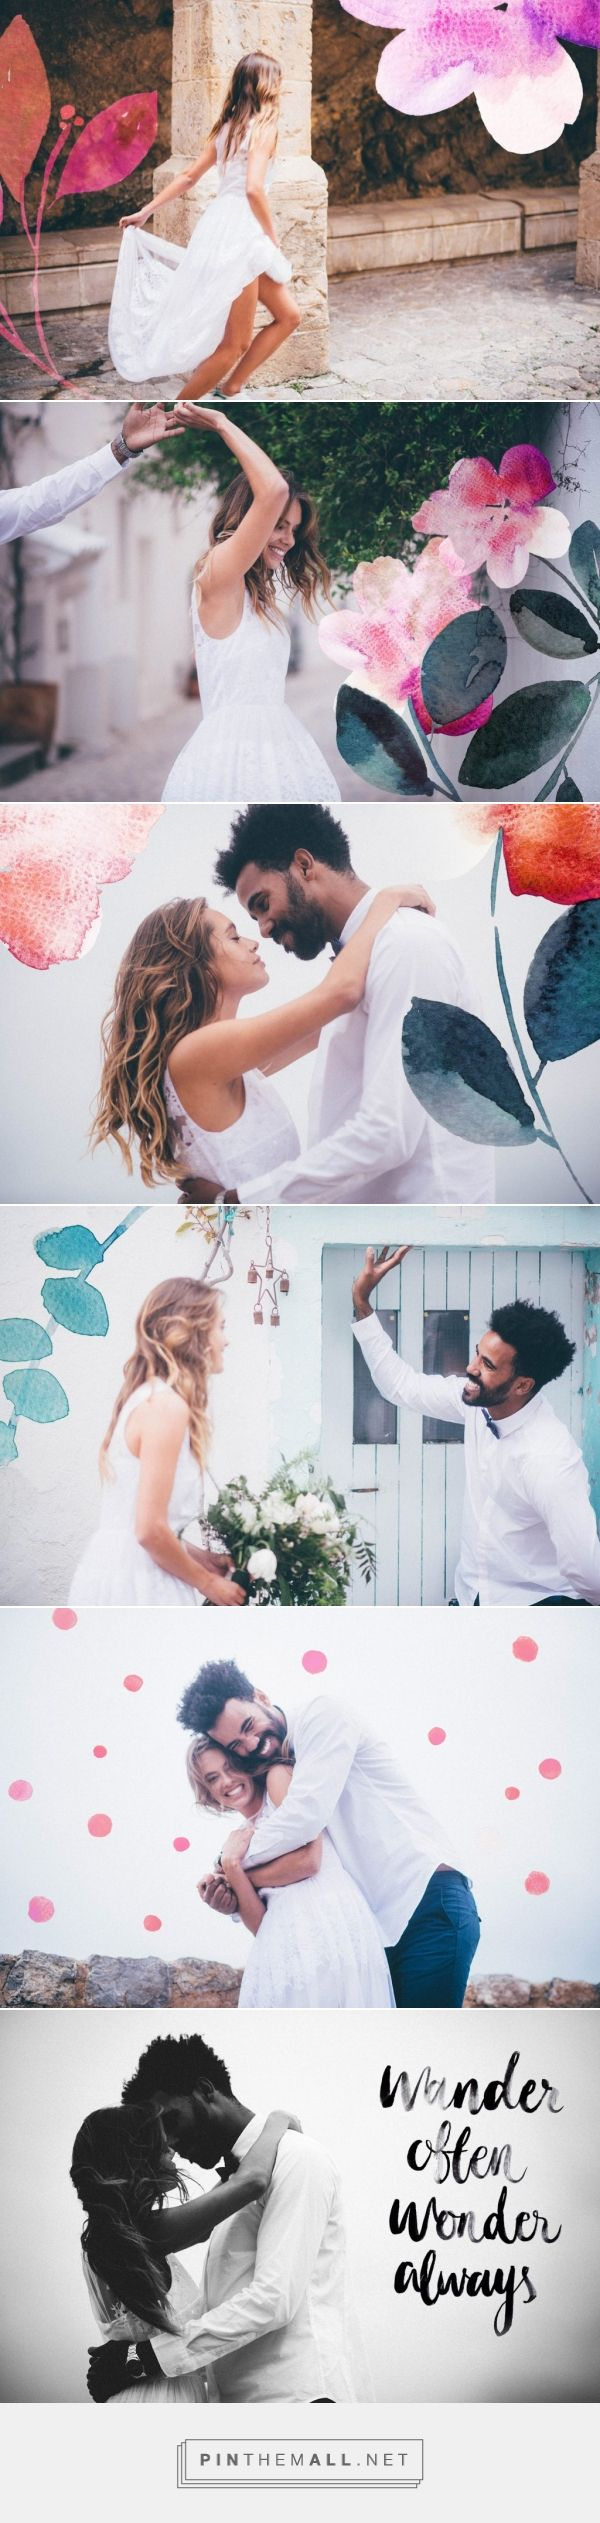 Watercolor paintings over your wedding photographies » Lovers Love Loving - http://www.loversloveloving.com/en/bodas-loversloveloving/fun-wedding-at-dalt-vila